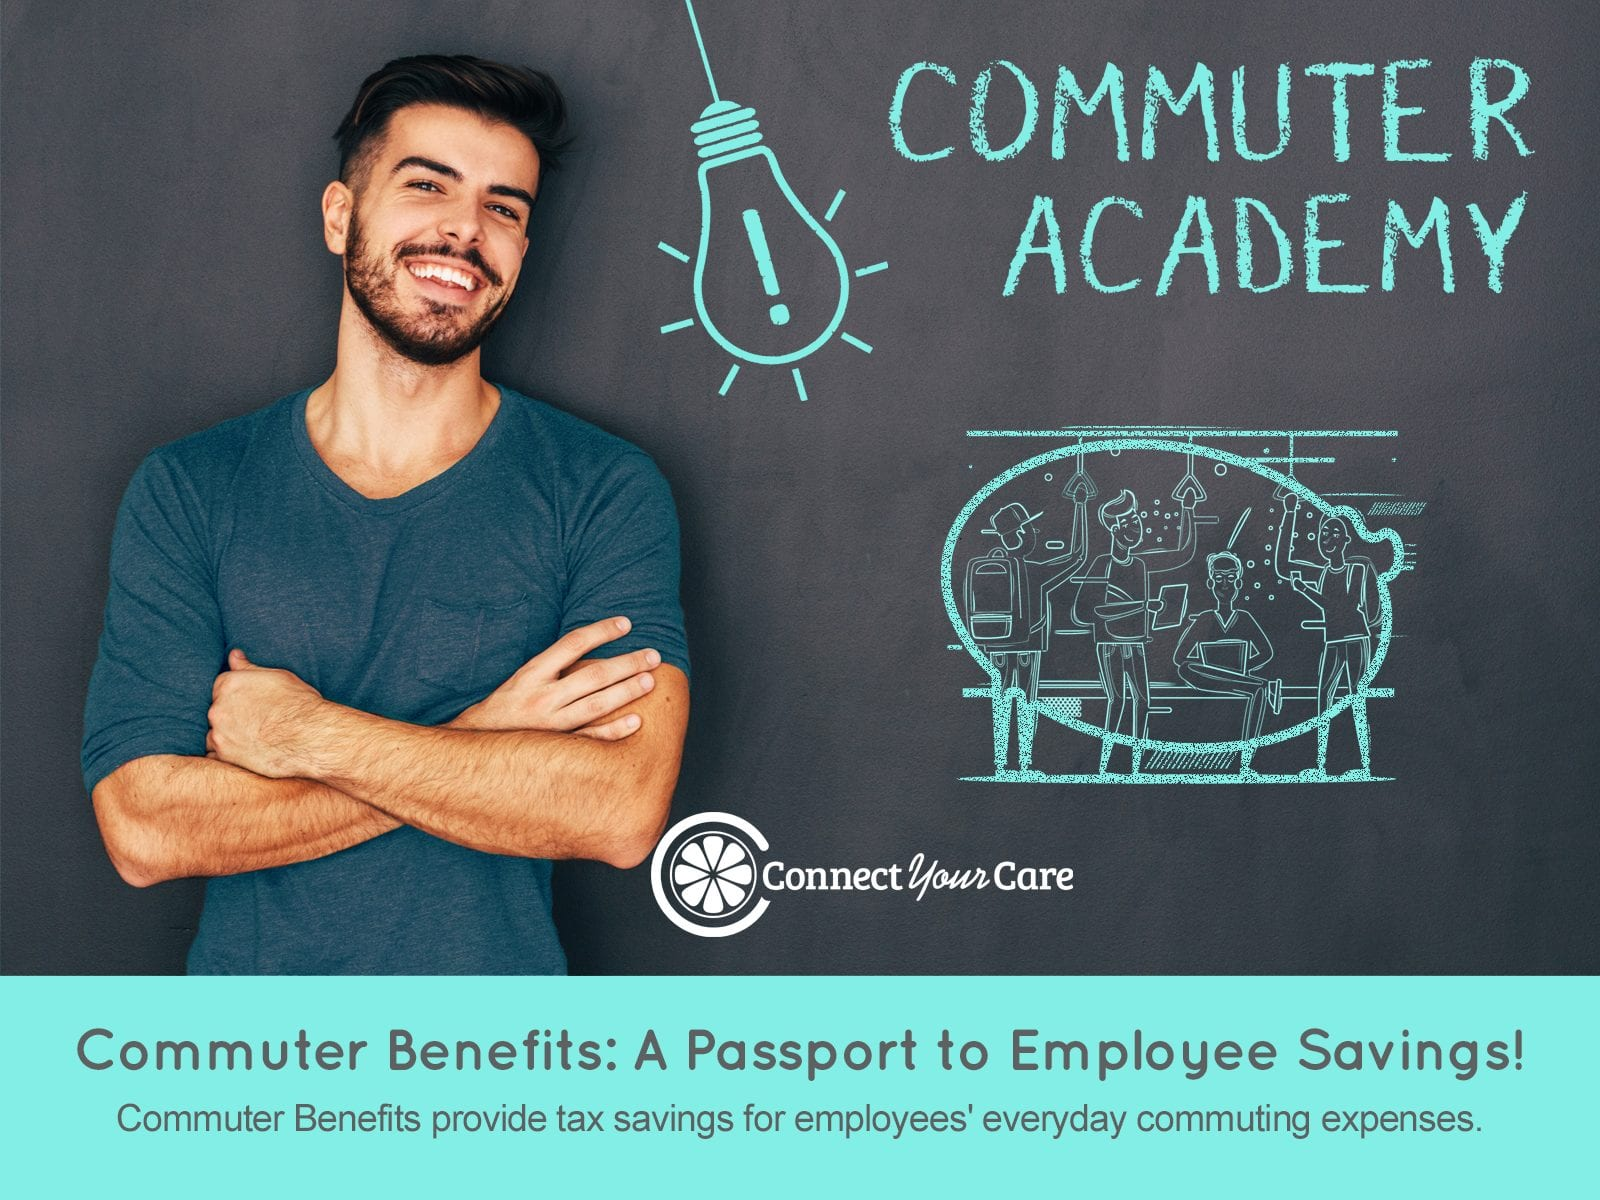 connectyourcare roadmap to commuter benefits infographic